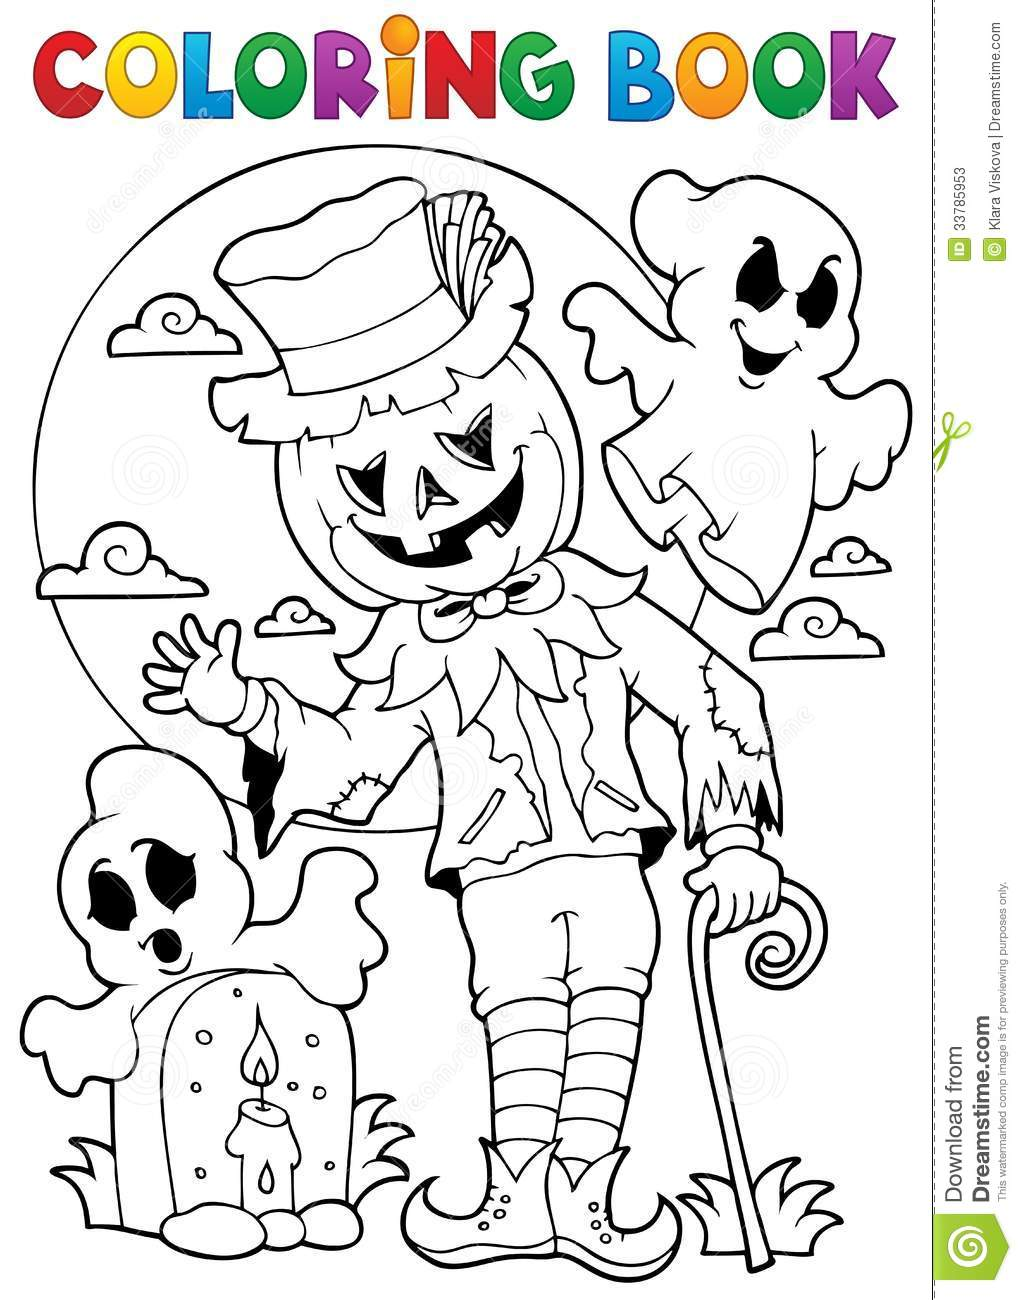 book halloween character 9 stock photos image 33785953 coloring book